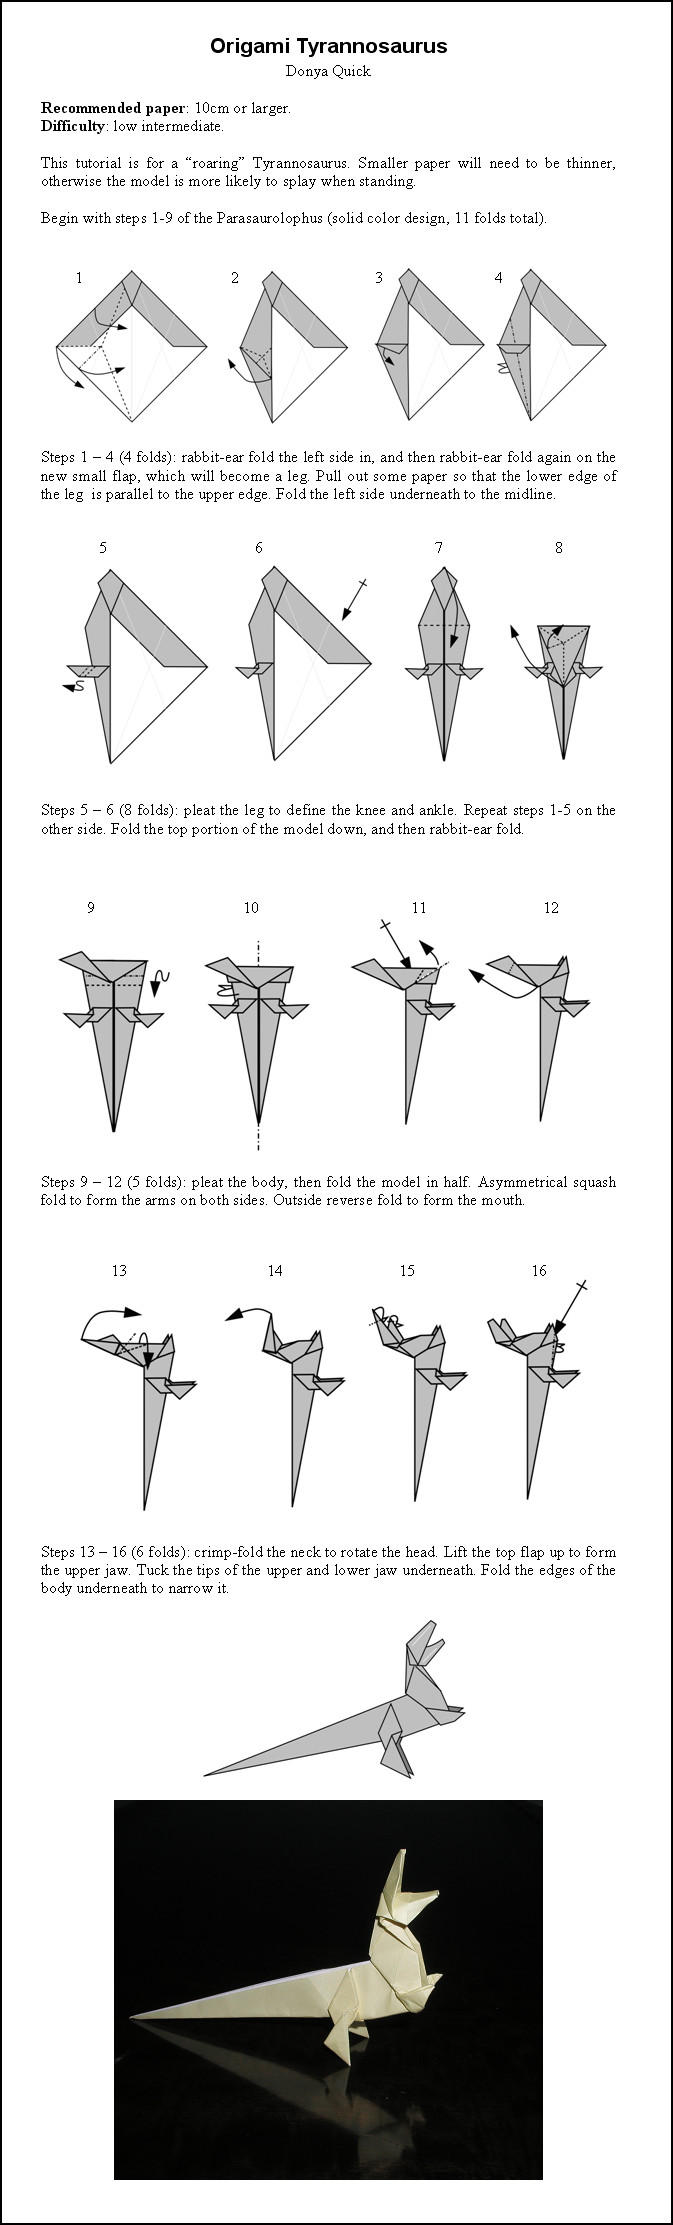 Origami T-rex Instructions by DonyaQuick on DeviantArt